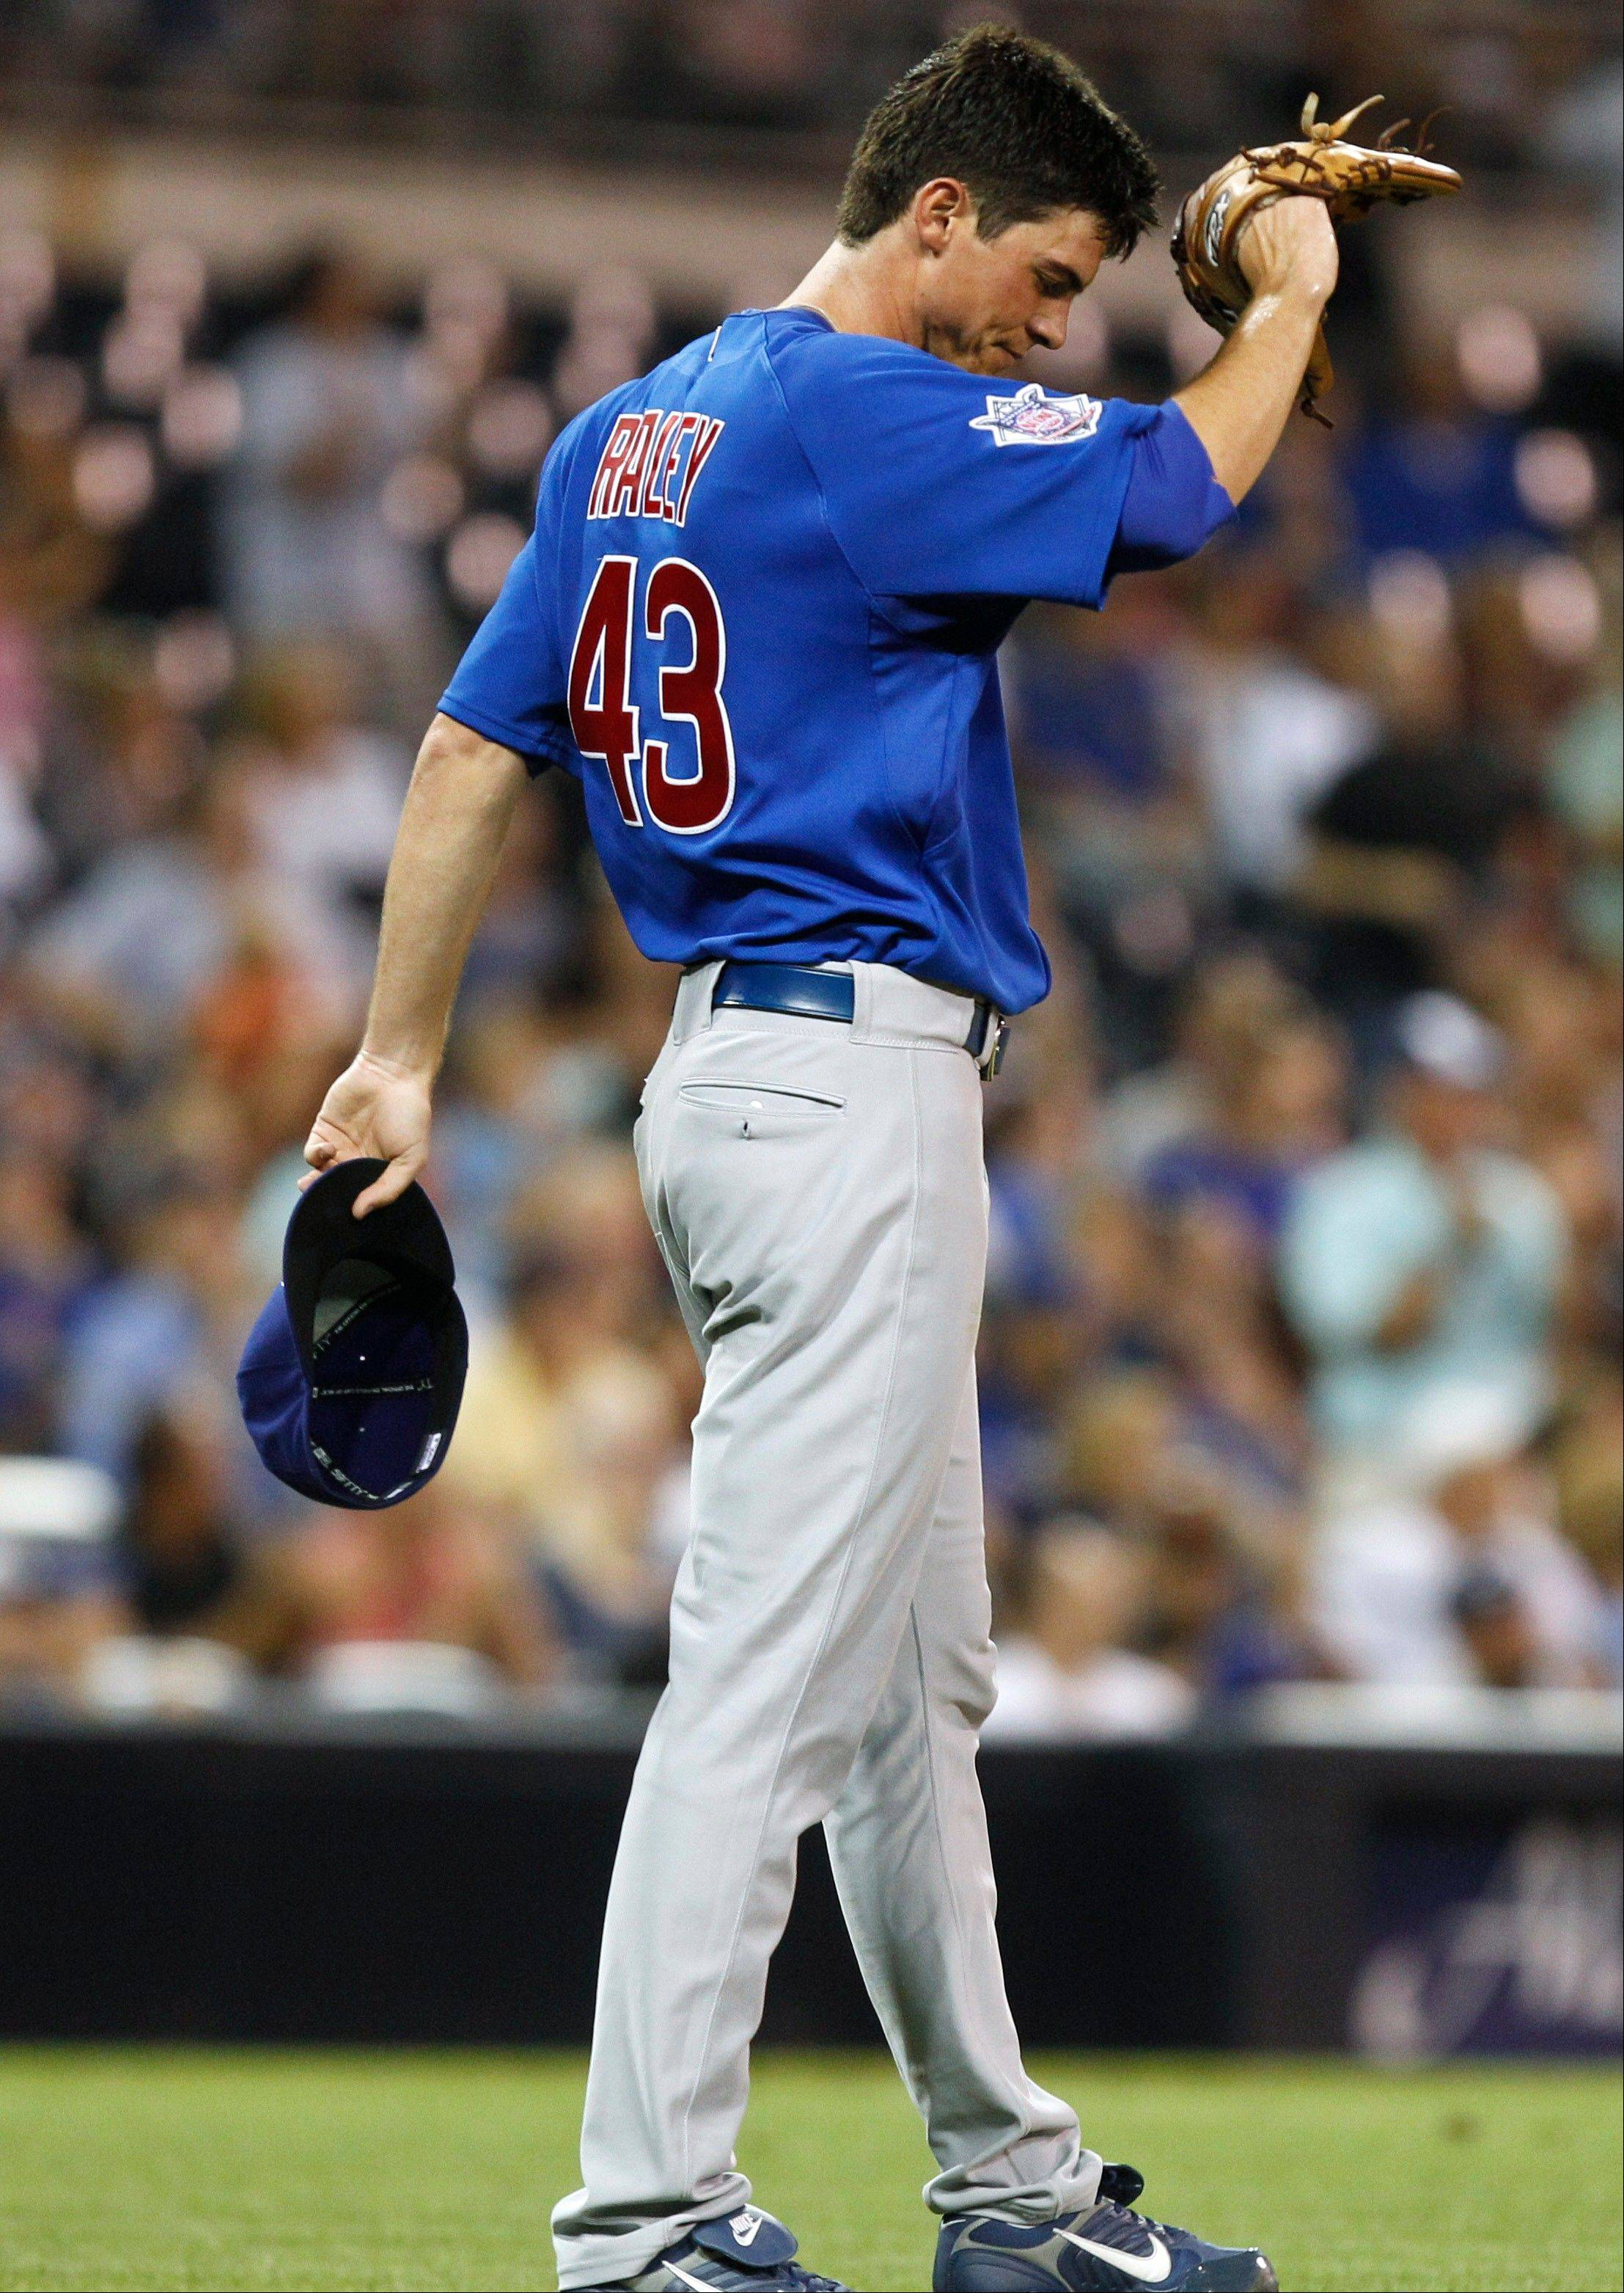 Cubs starter Brooks Raley wipes his brow after surrendering a 3-run home run to the Padres' Carlos Quentin during the fourth inning Tuesday night. Raley lasted 4 innings and gave up 7 runs and 8 hits.